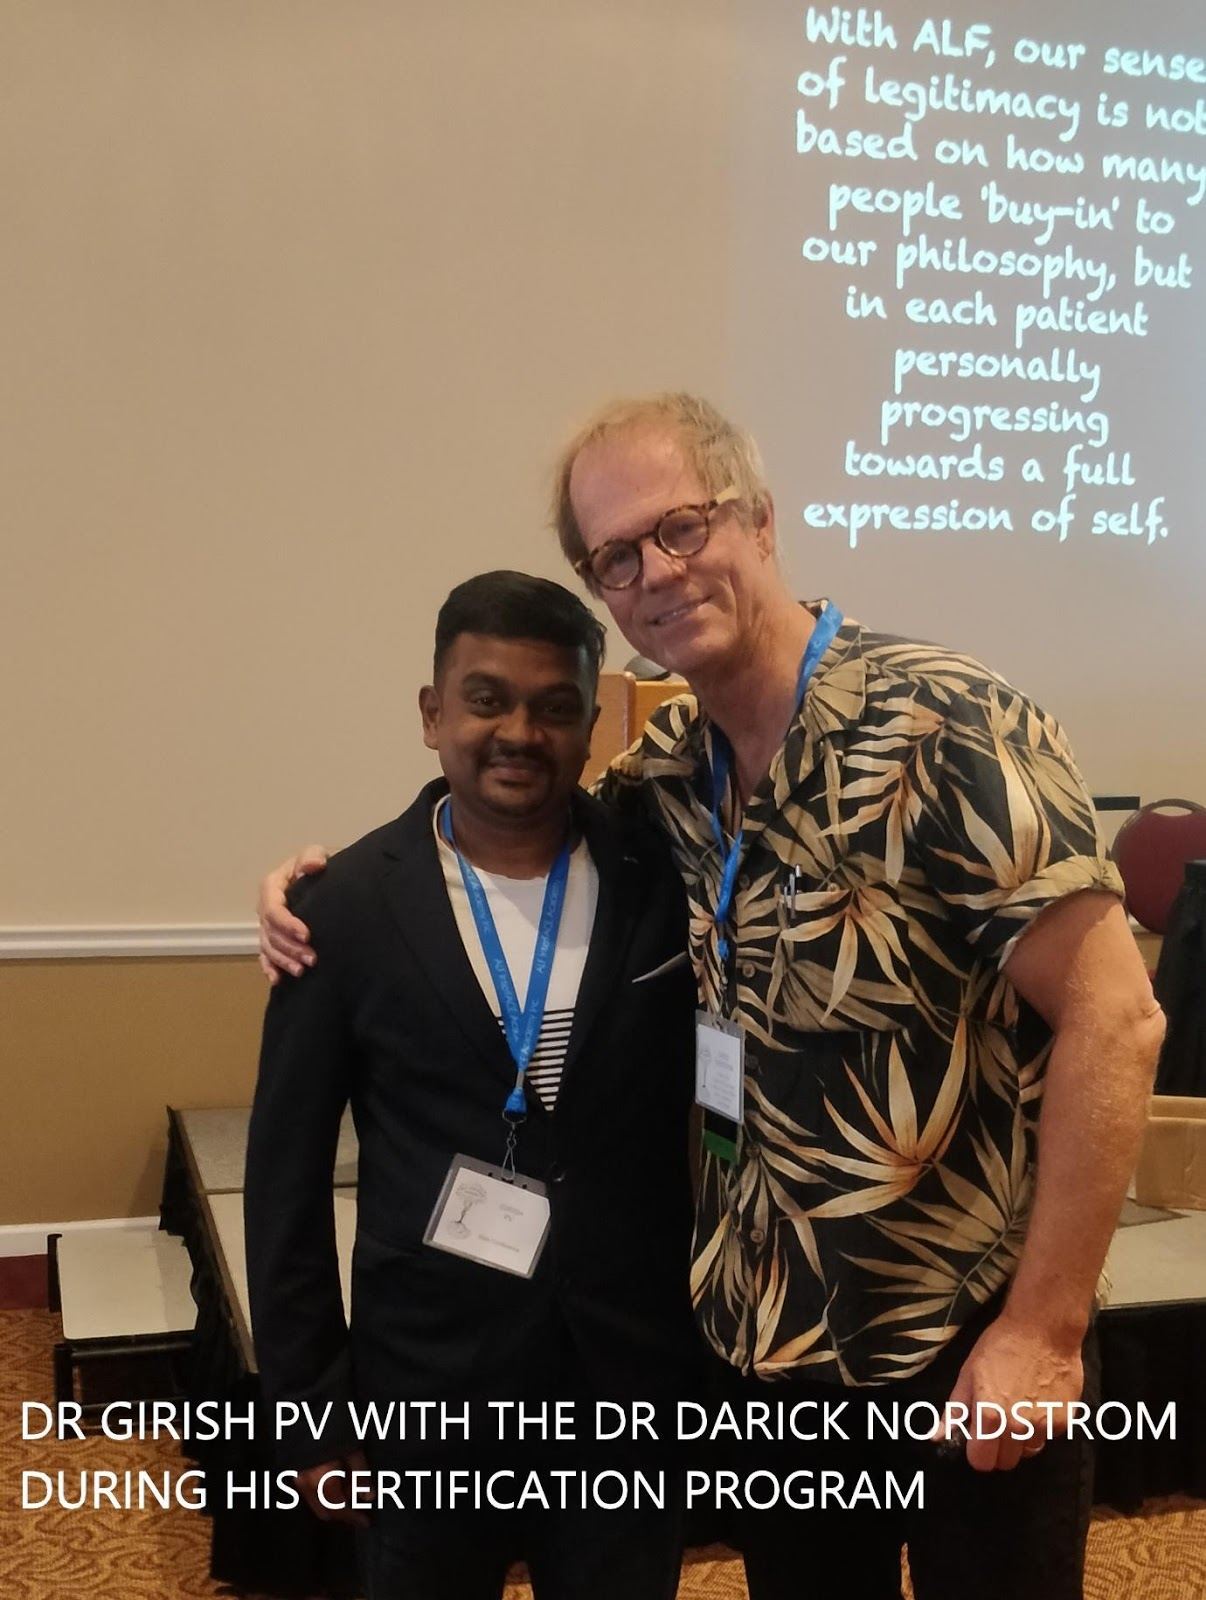 Dr Girish with Dr Darick Nordstrom